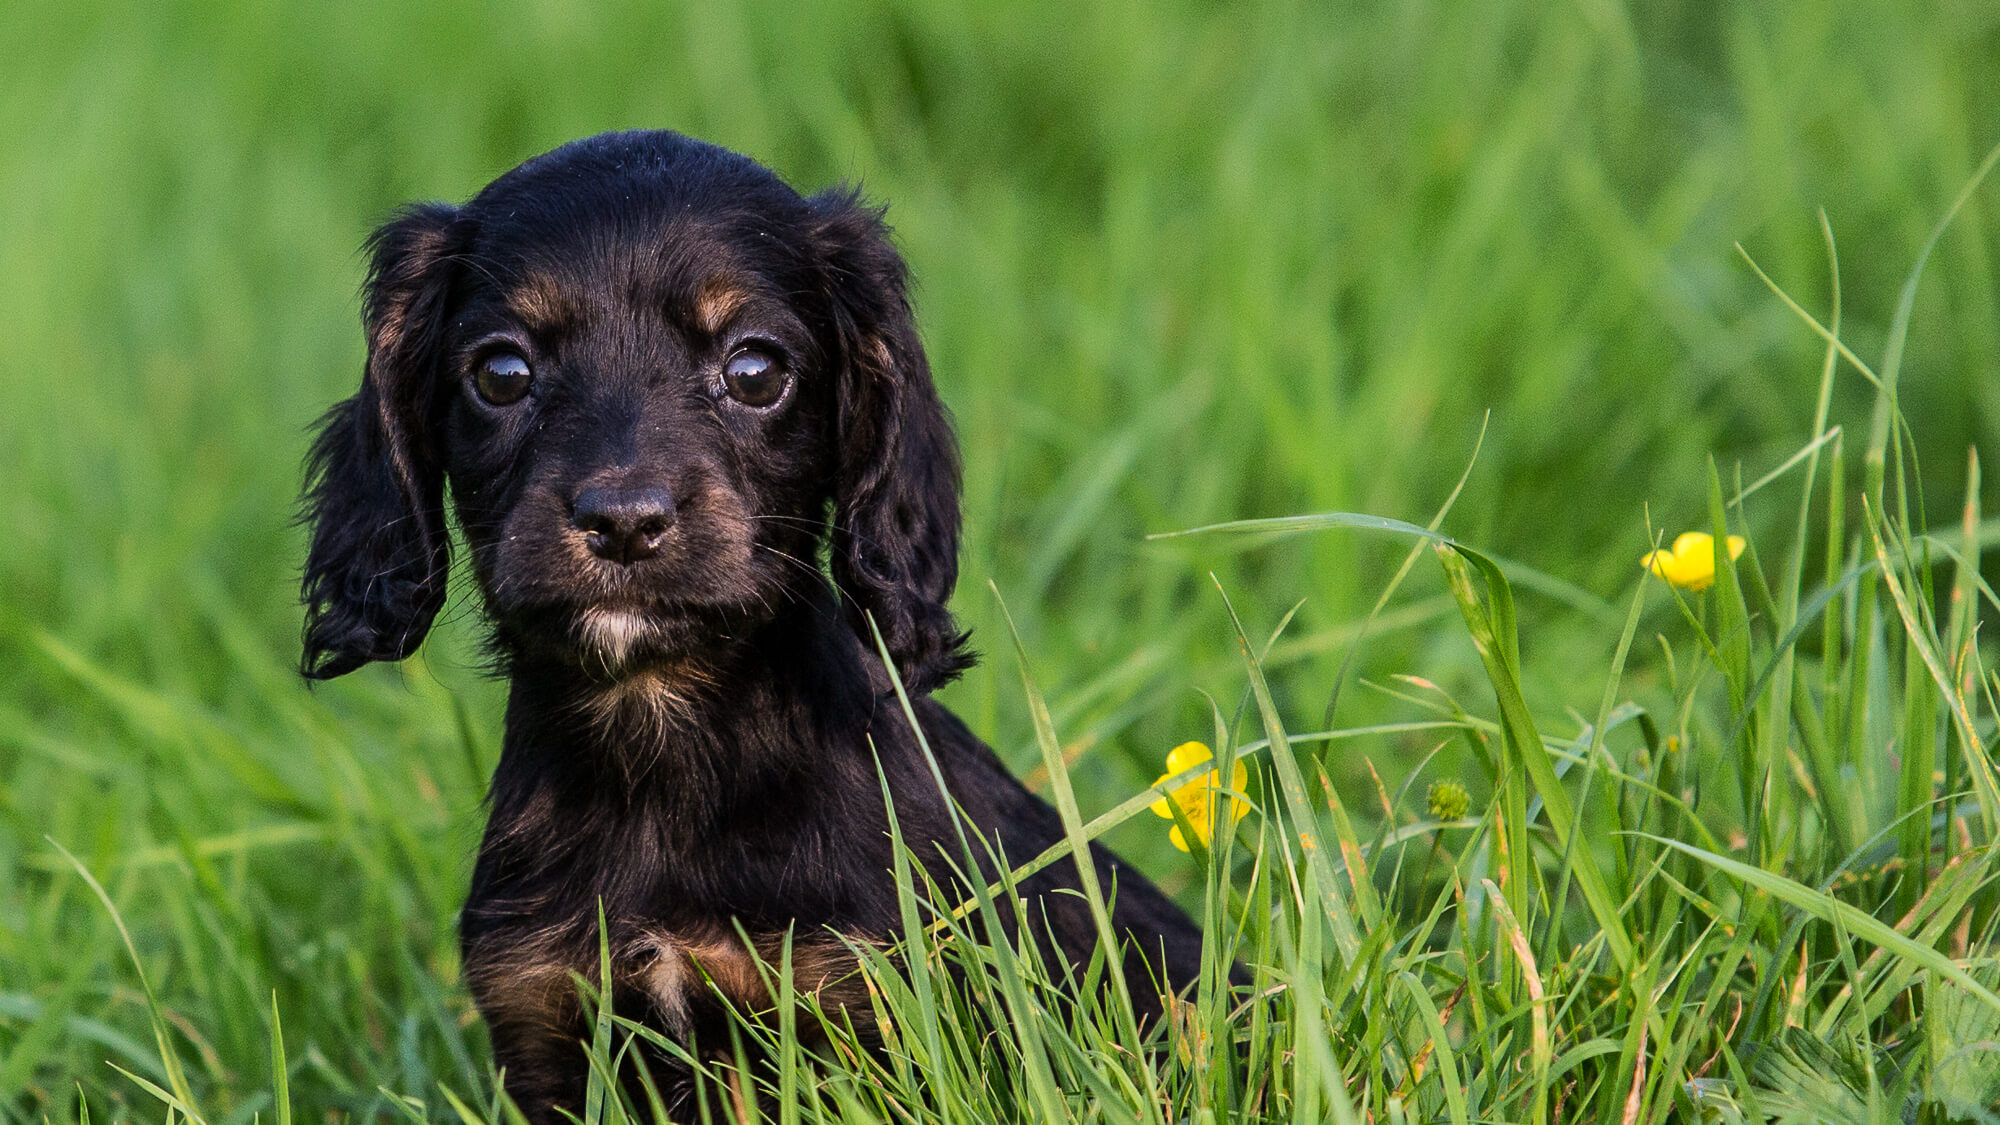 Puppy in field